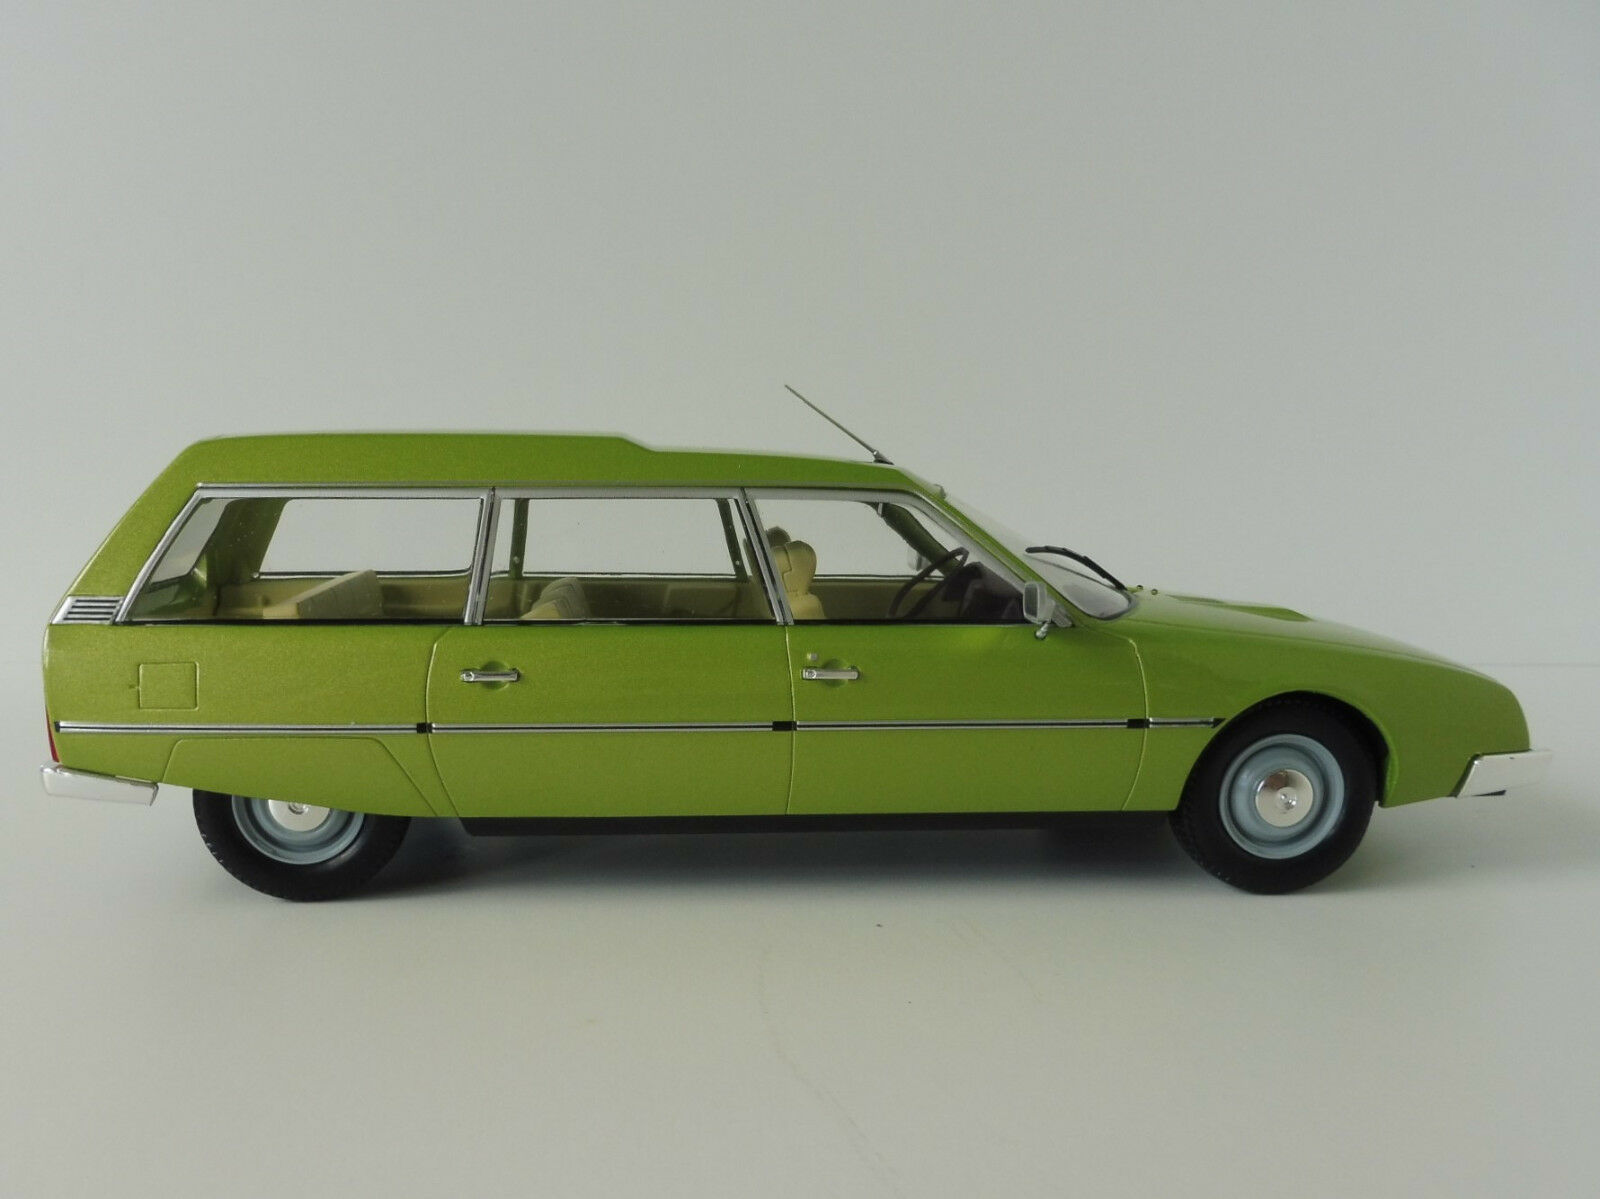 Citroën Cx 2400 Super Break verde 1976 1 18 modelloauto Group Mcg18087 Familiare